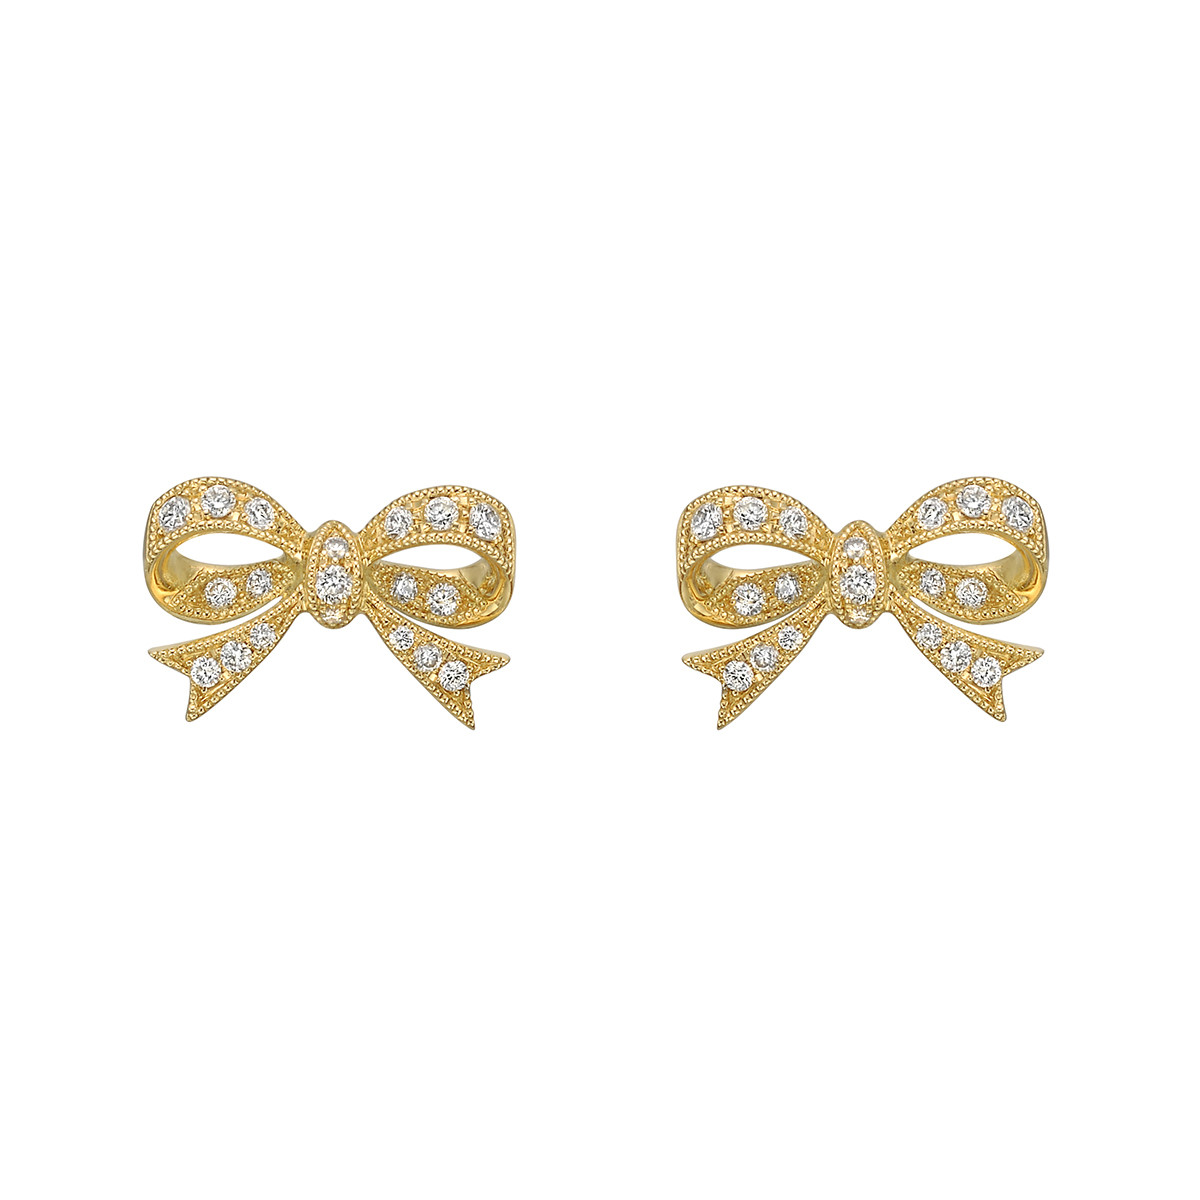 18k Yellow Gold & Diamond Bow Earstuds